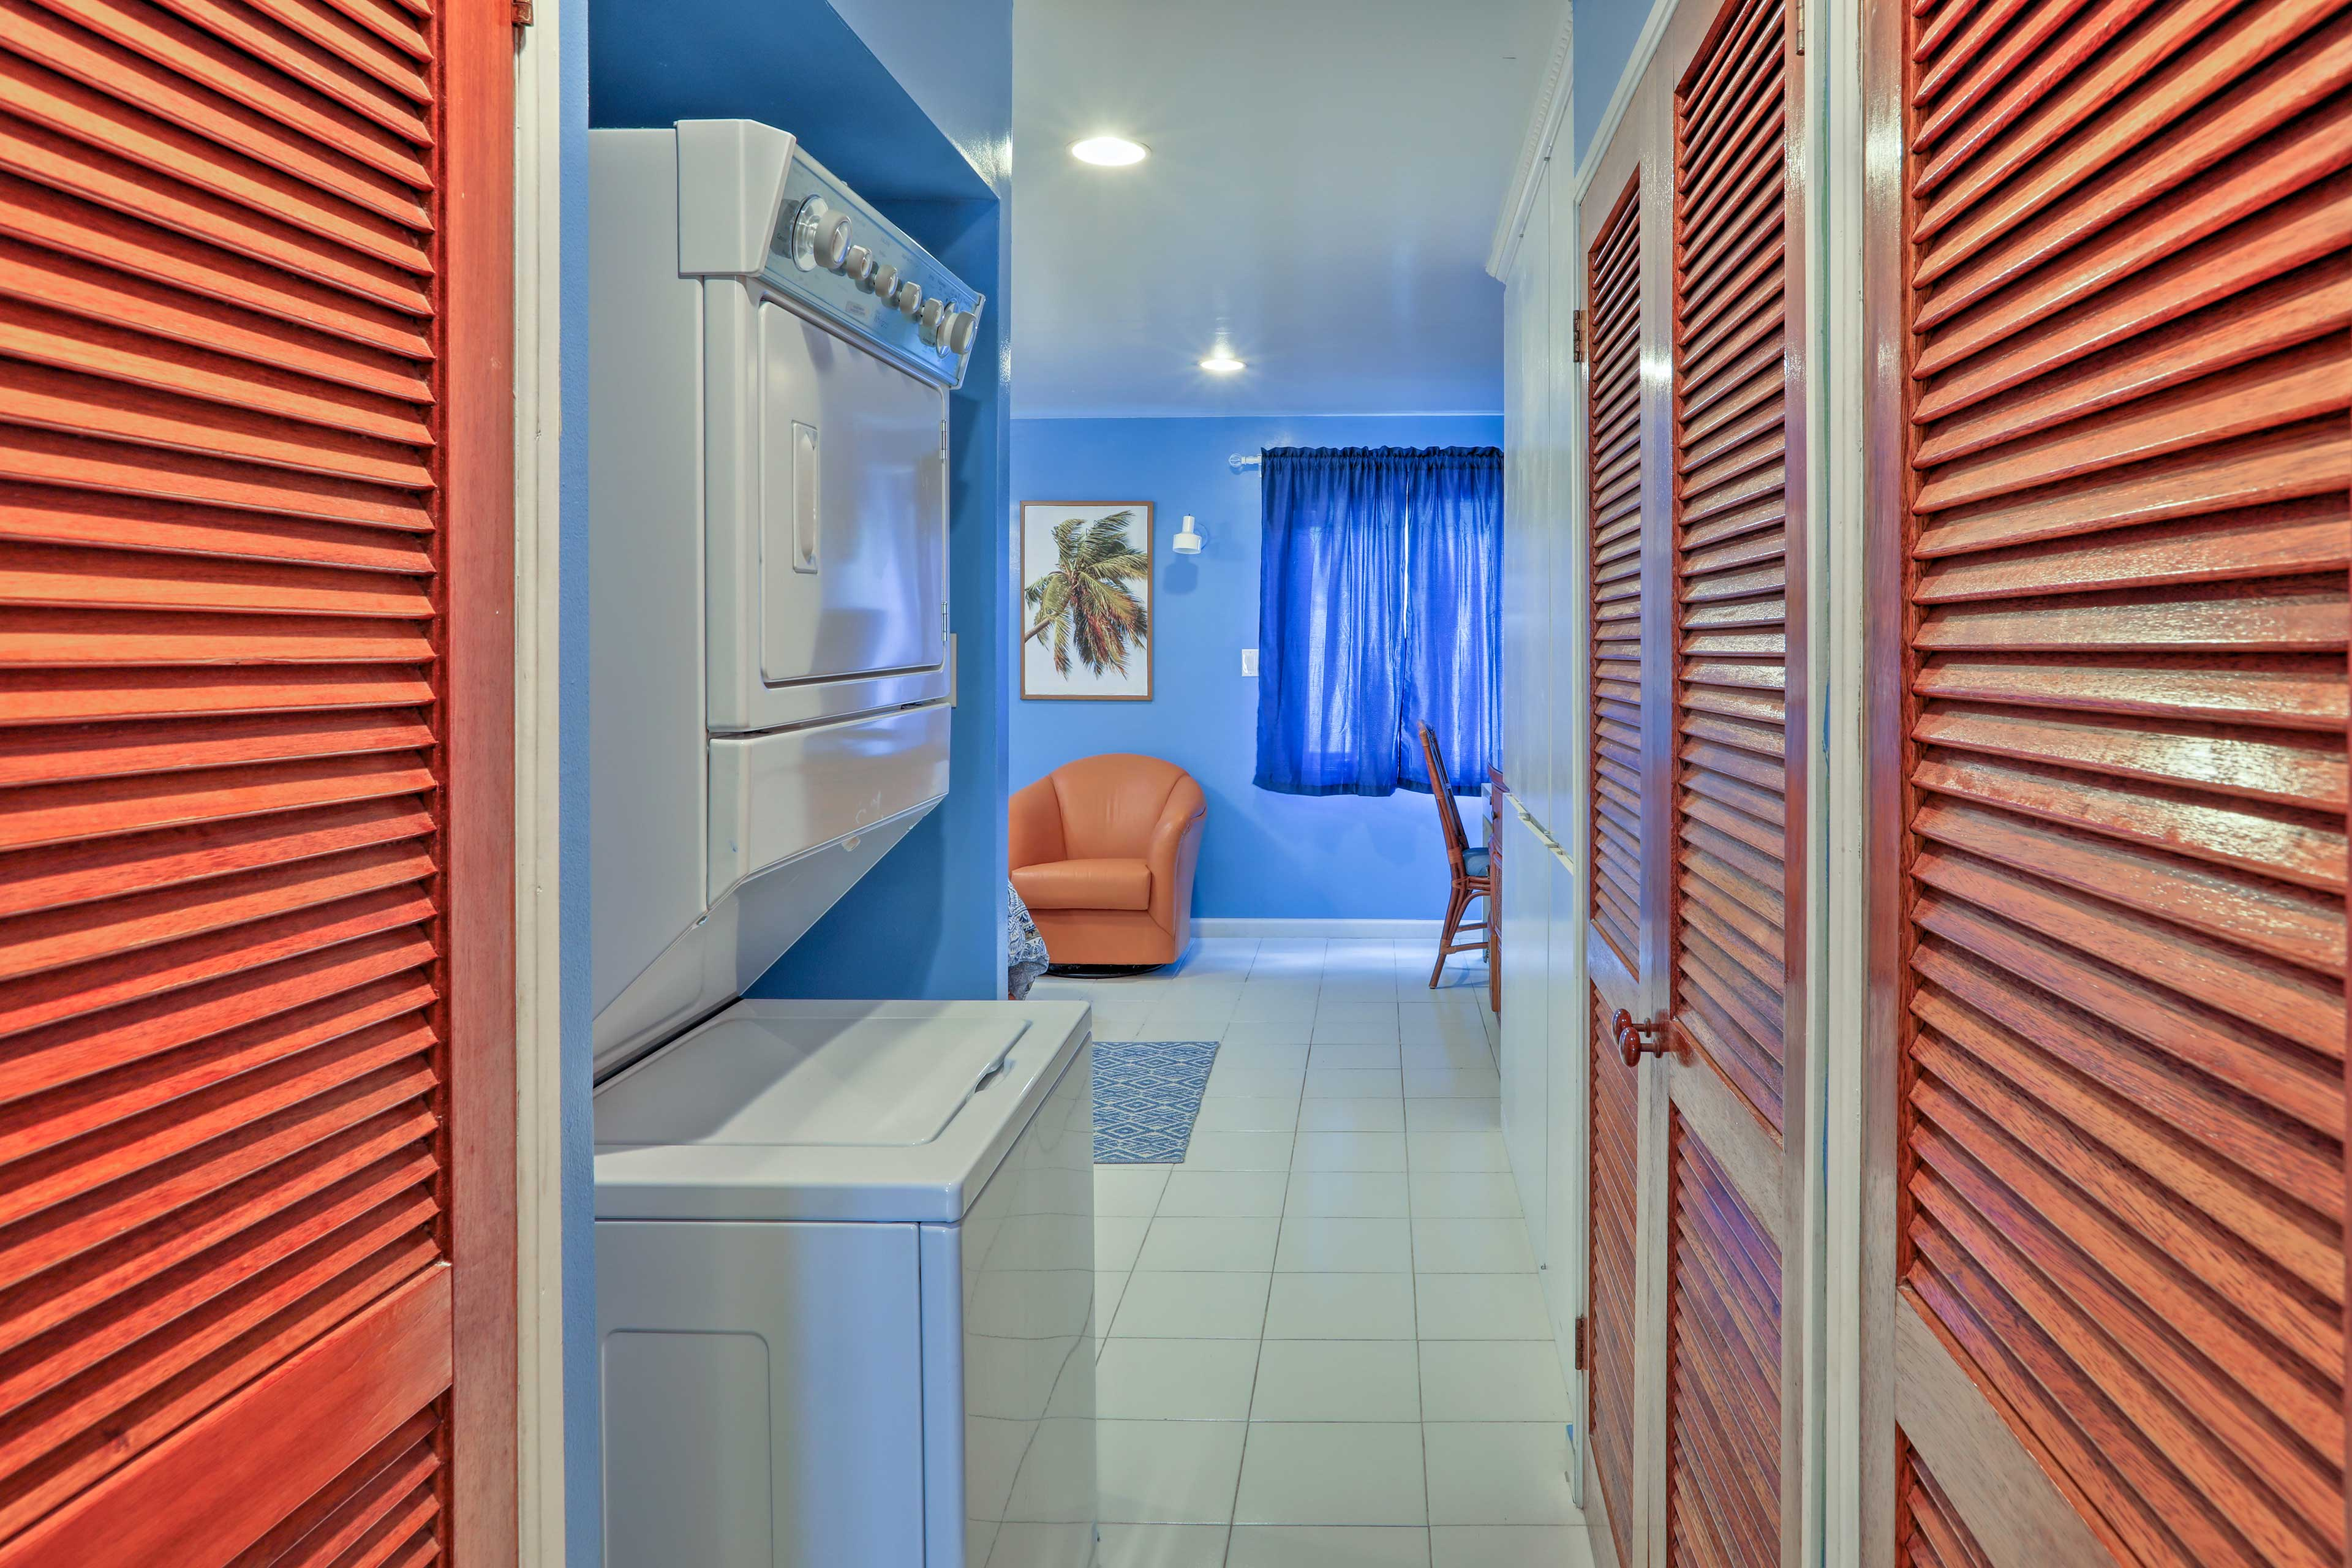 Stacked laundry machines are provided for your convenience.